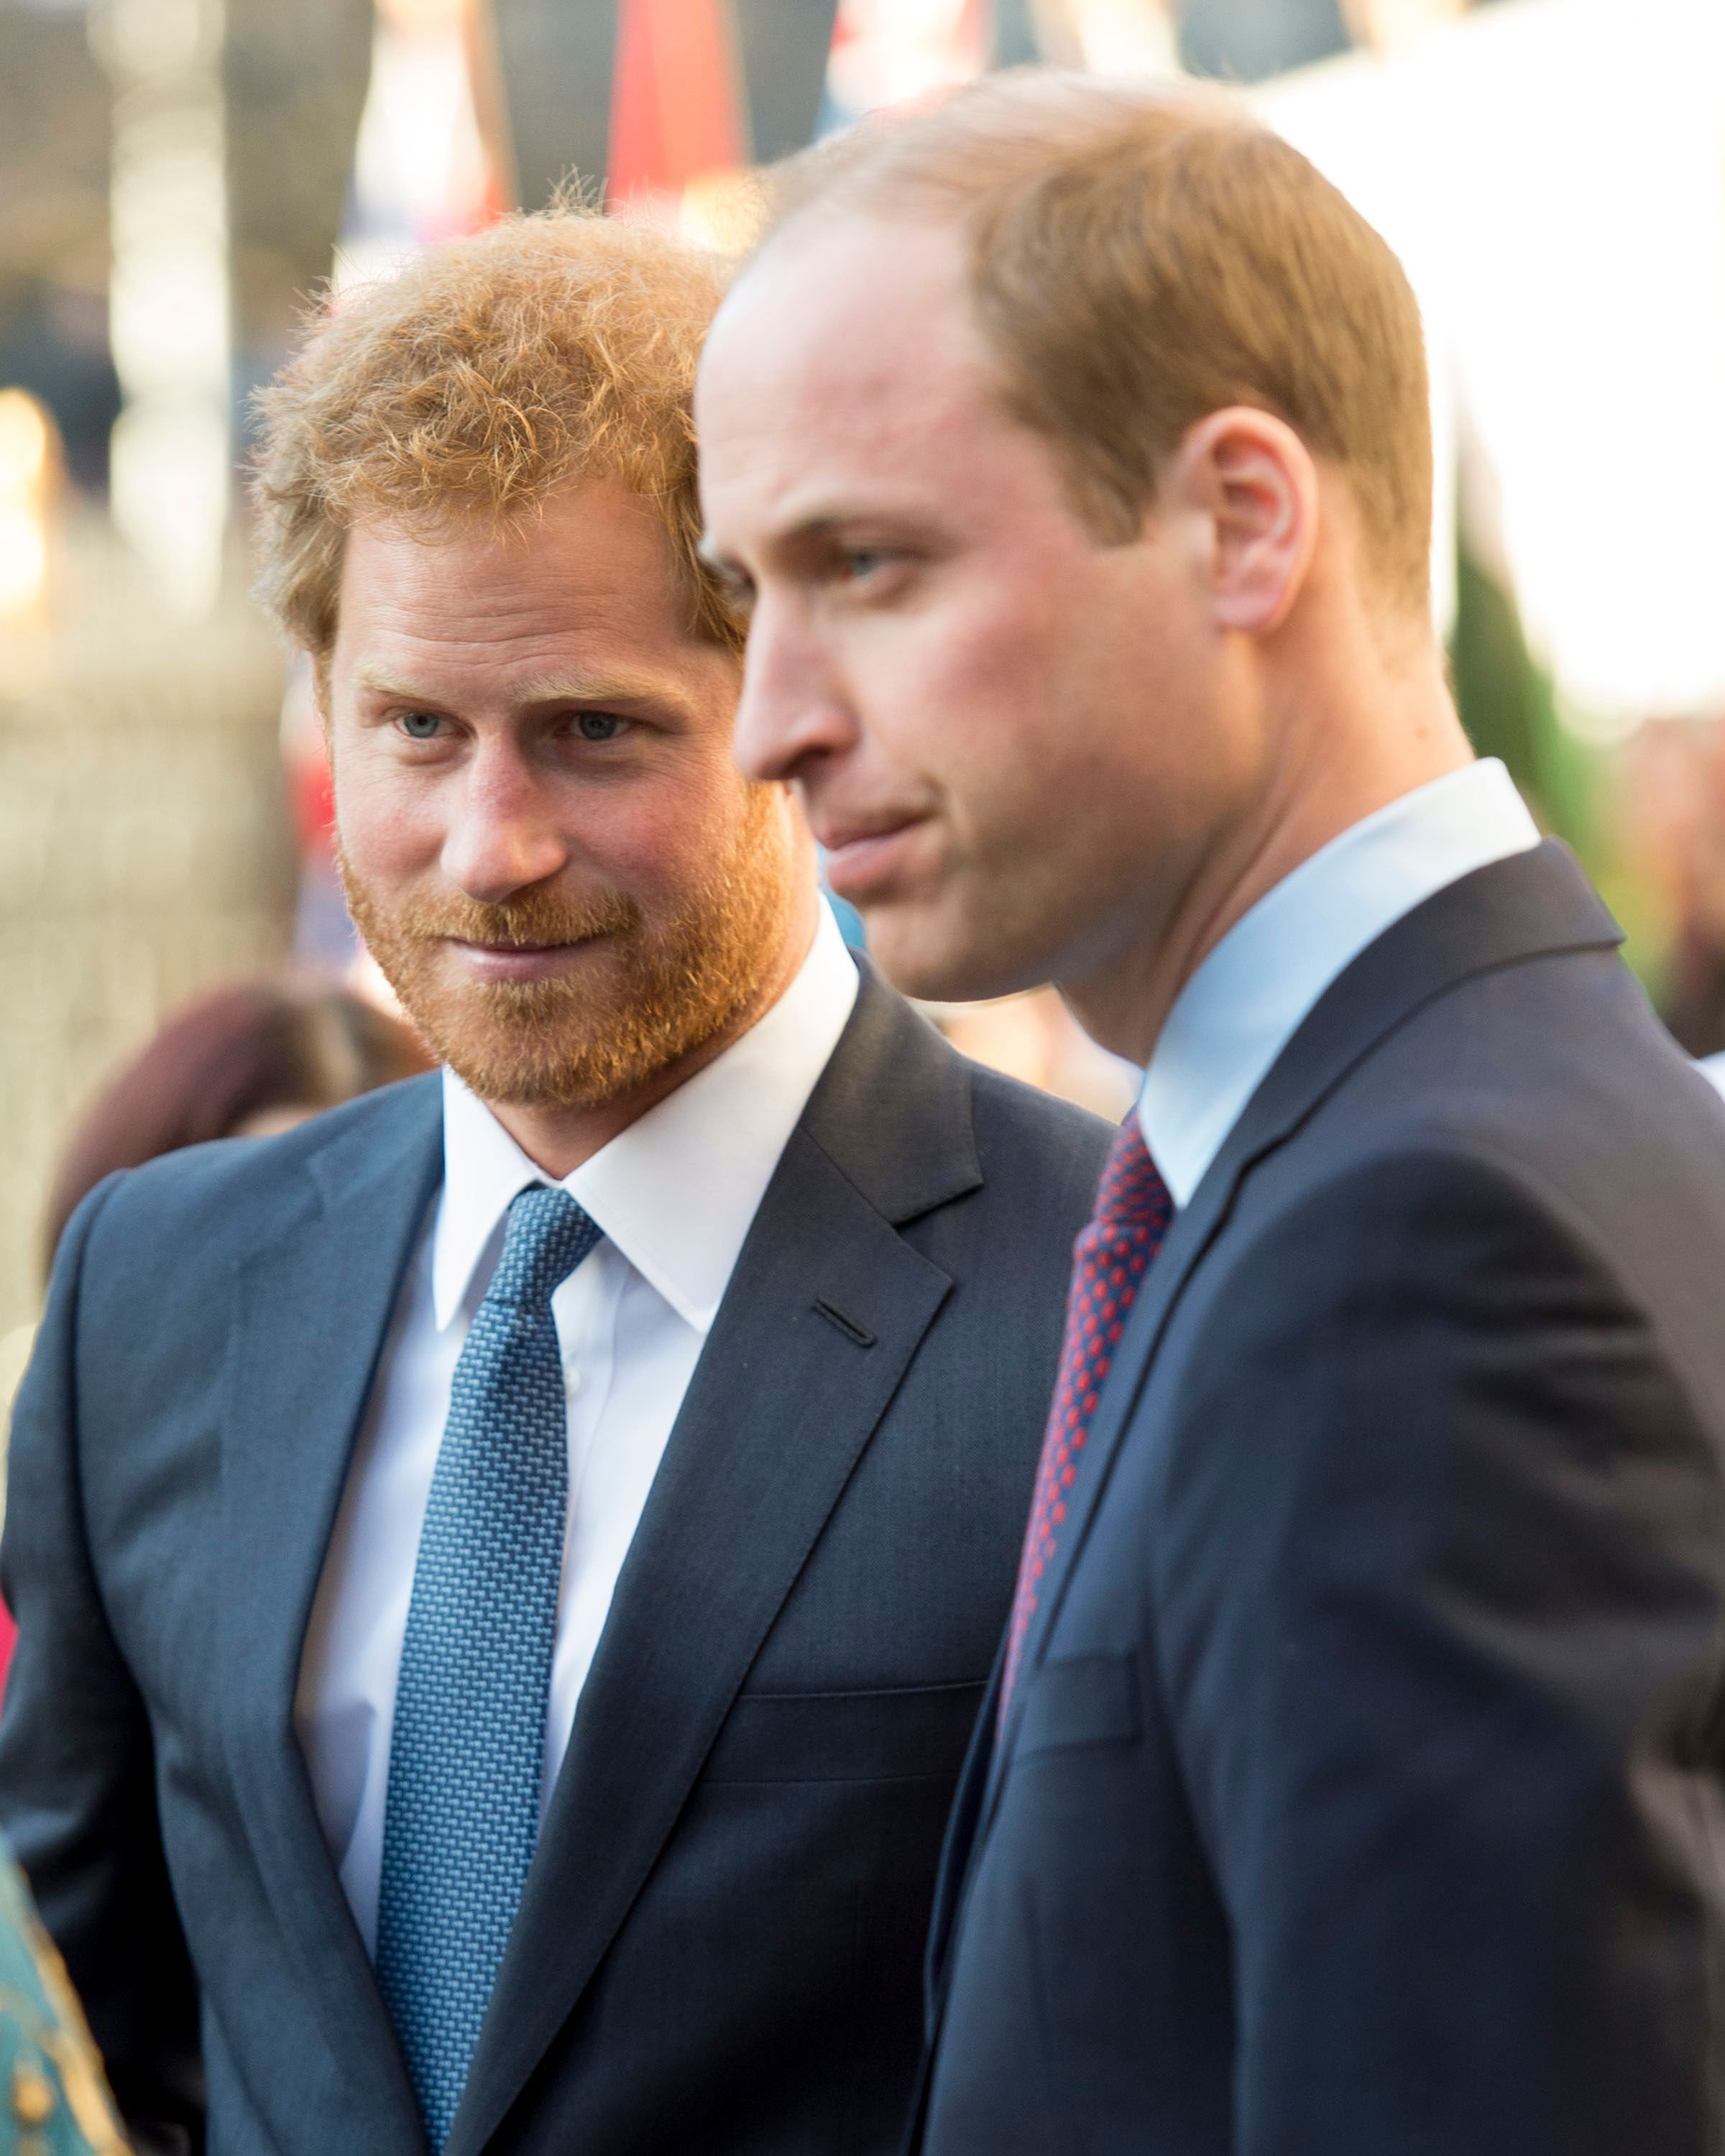 Prince Harry and Prince Williamatthe Commonwealth Observance Day Service on March 14, 2016, in London, United Kingdom   Photo:Getty Images/Mark Cuthbert/UK Press